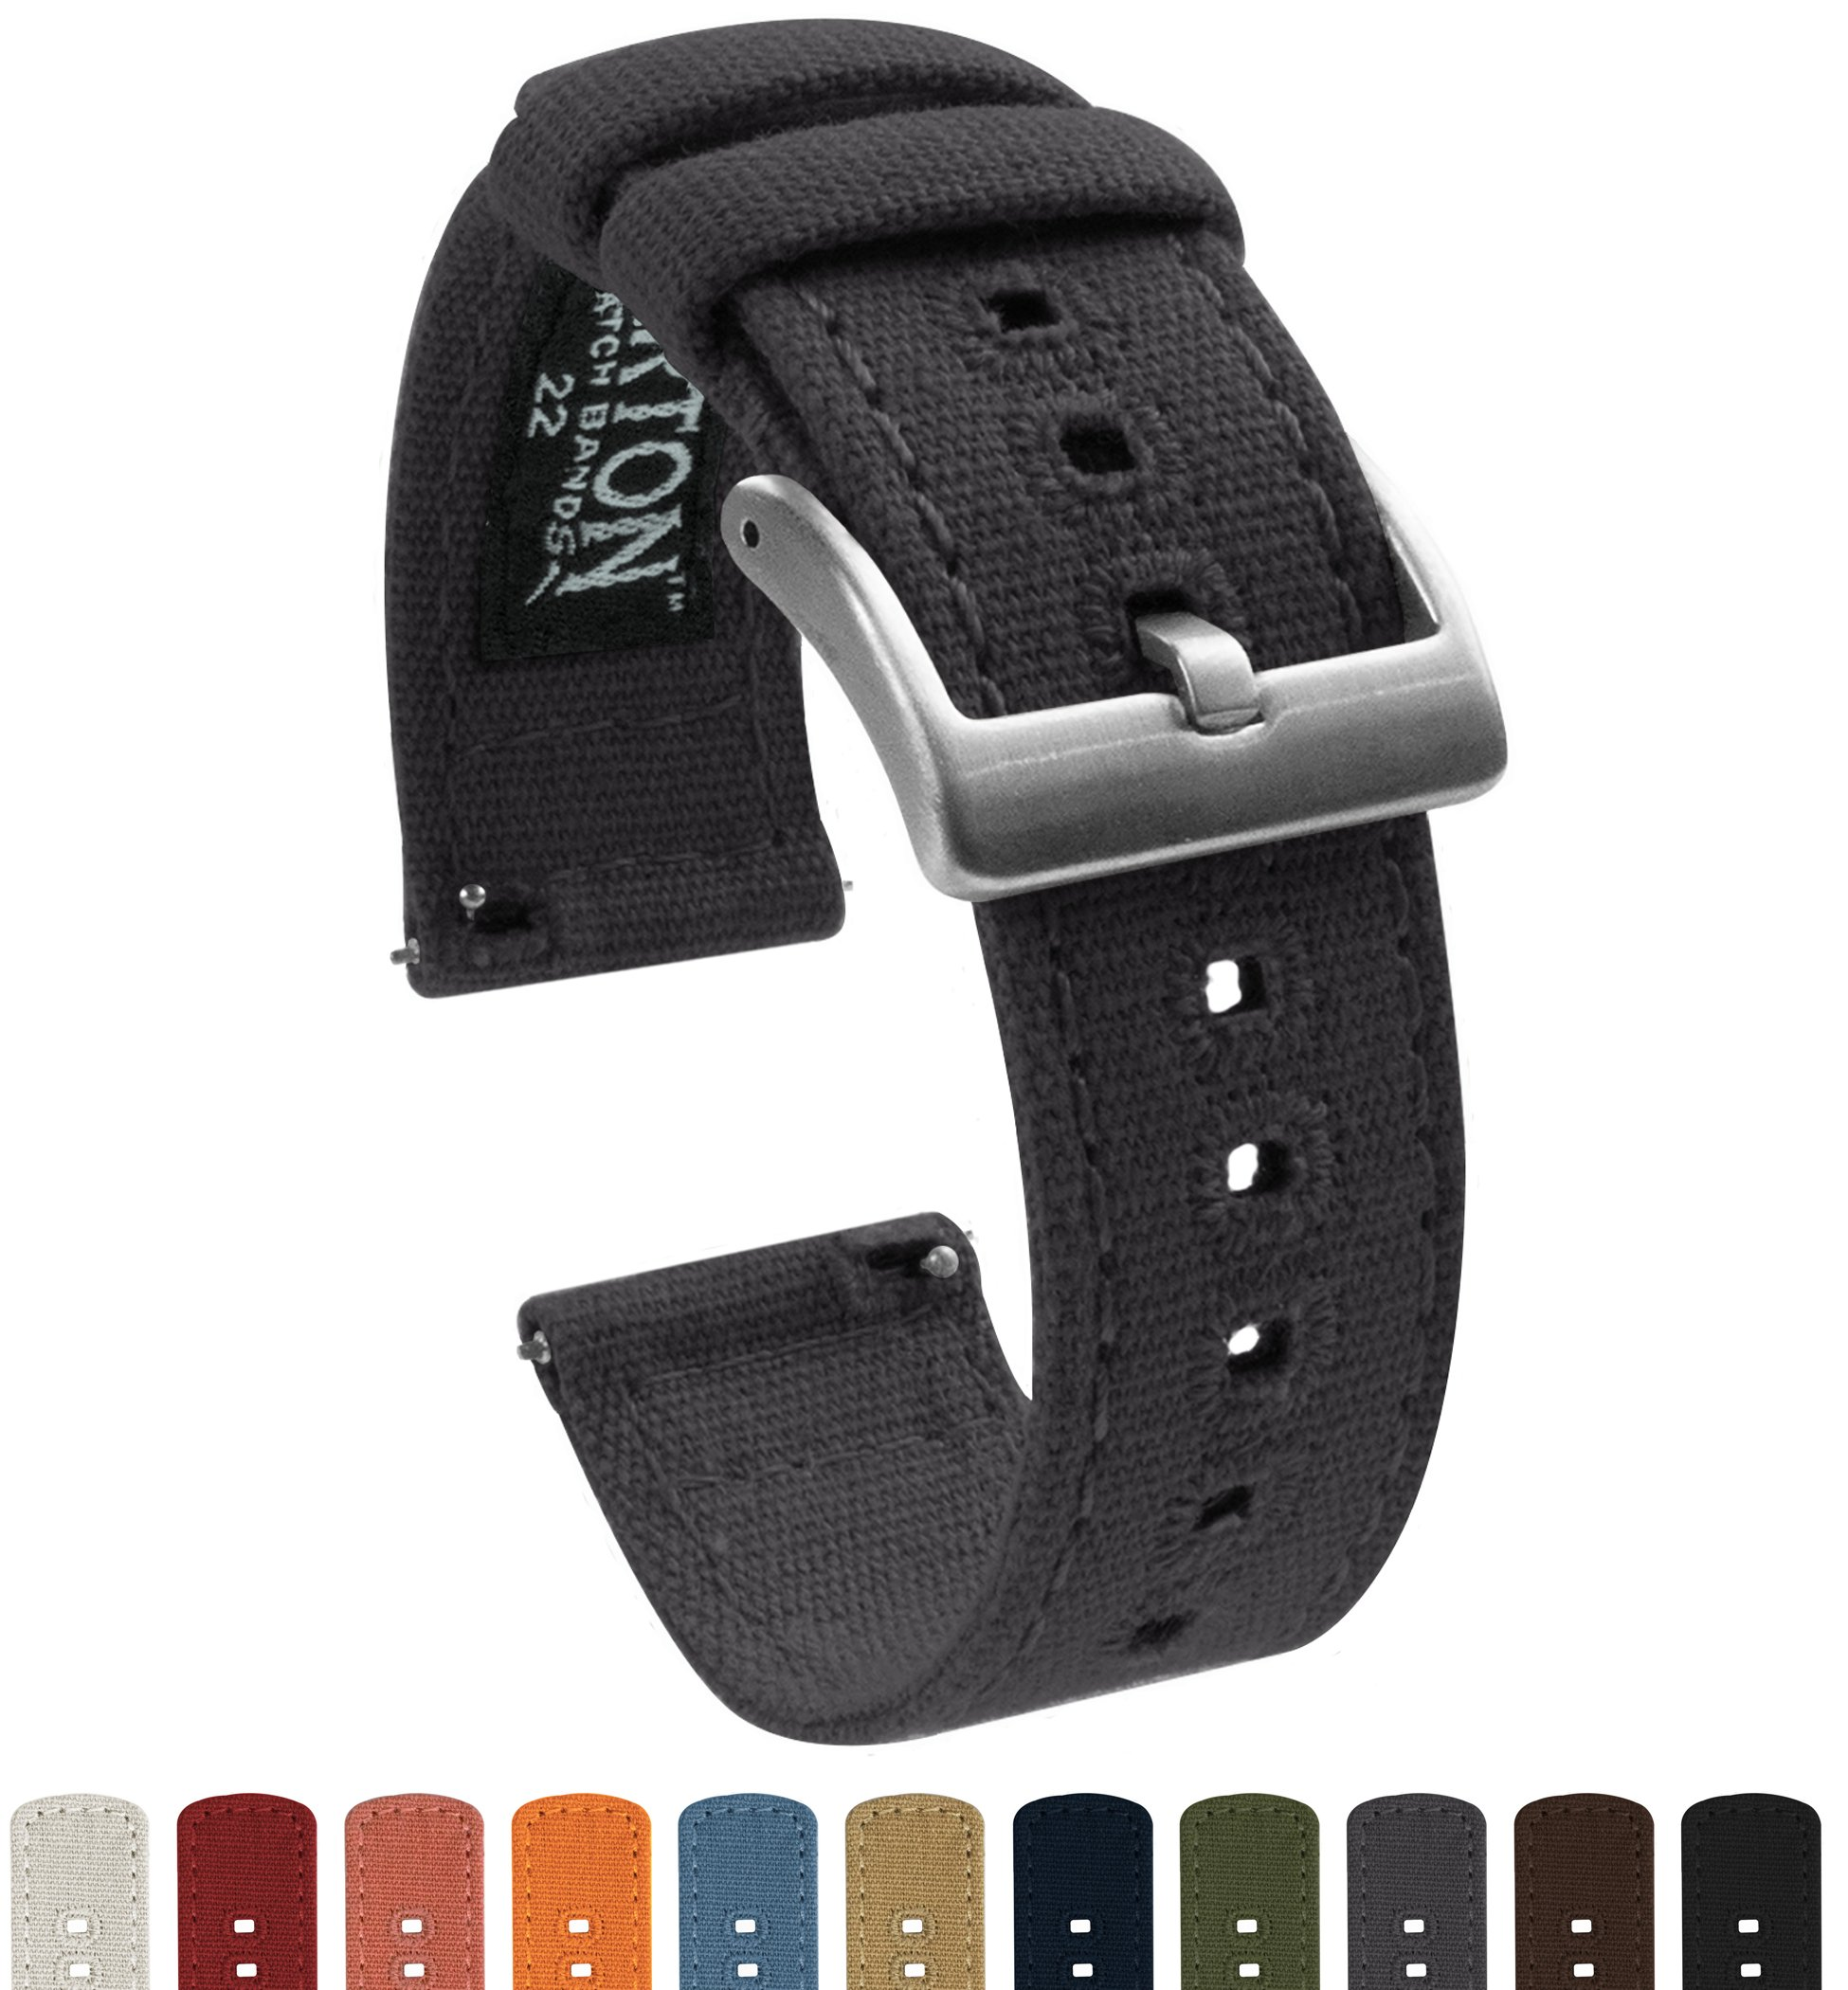 Barton Canvas Quick Release Watch Band Straps - Choose Color & Width - 18mm, 20mm, 22mm - Smoke Grey 22mm